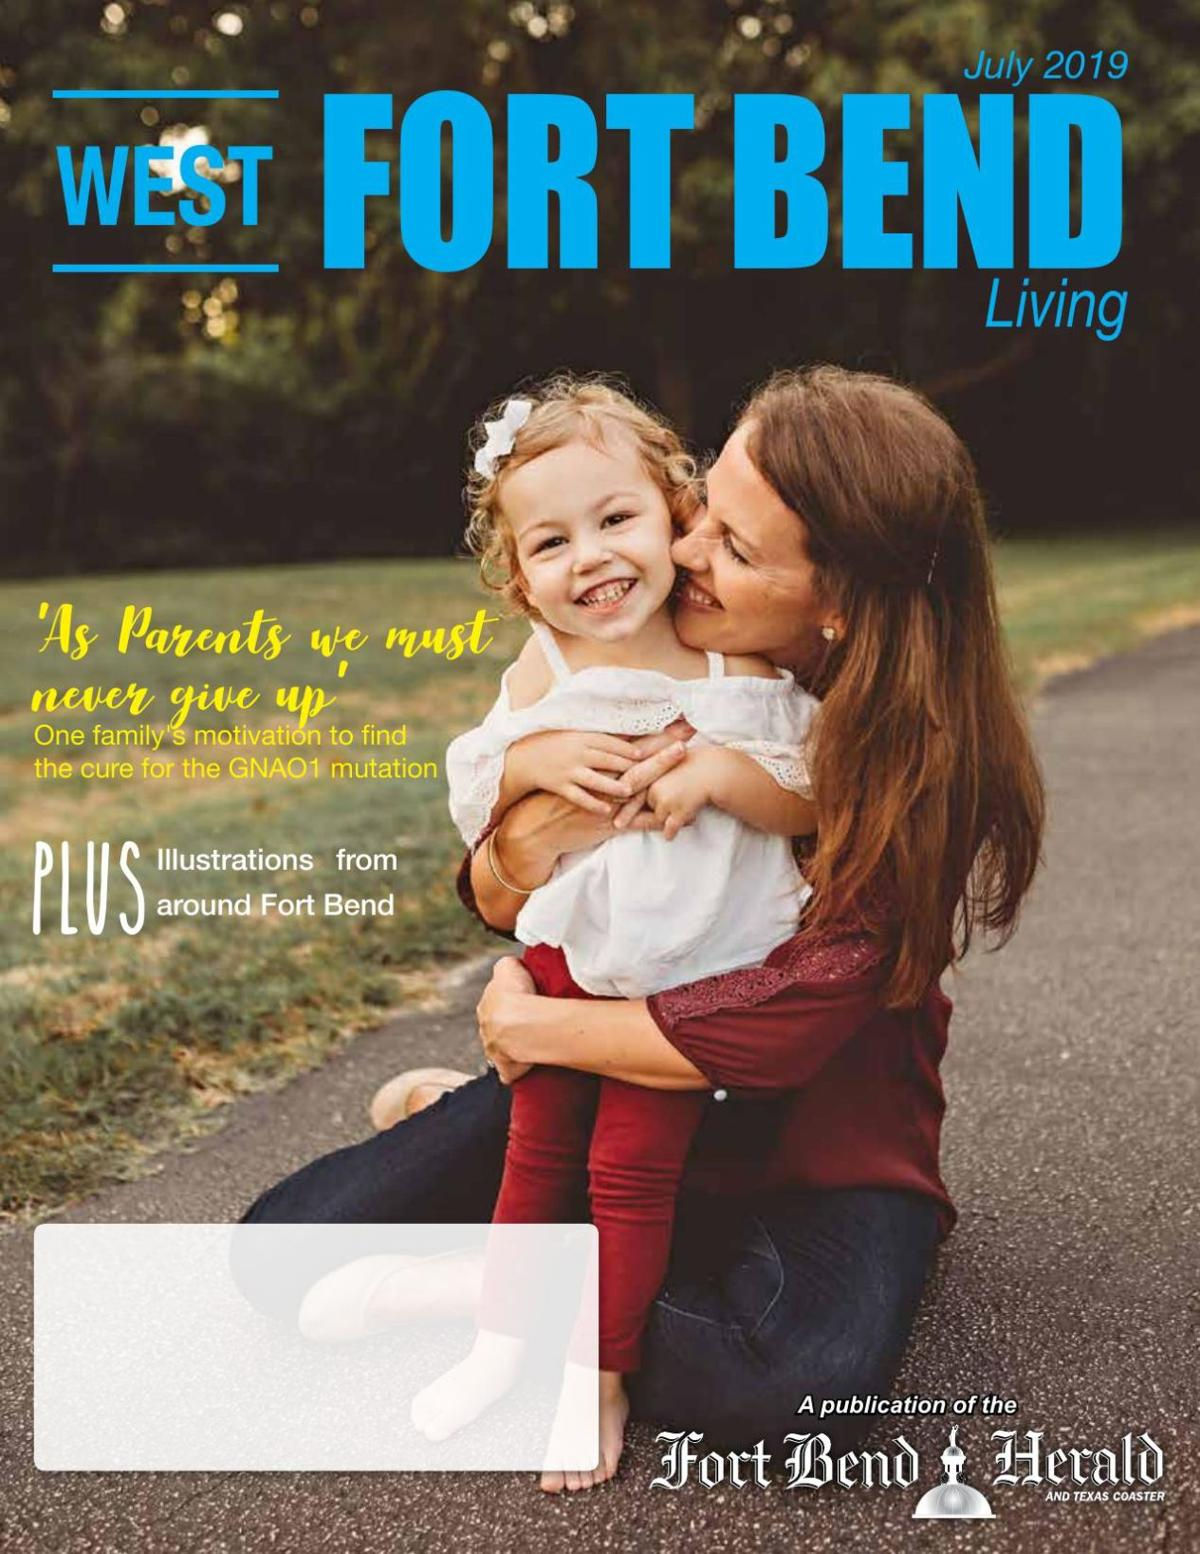 West Fort Bend Living: July 2019